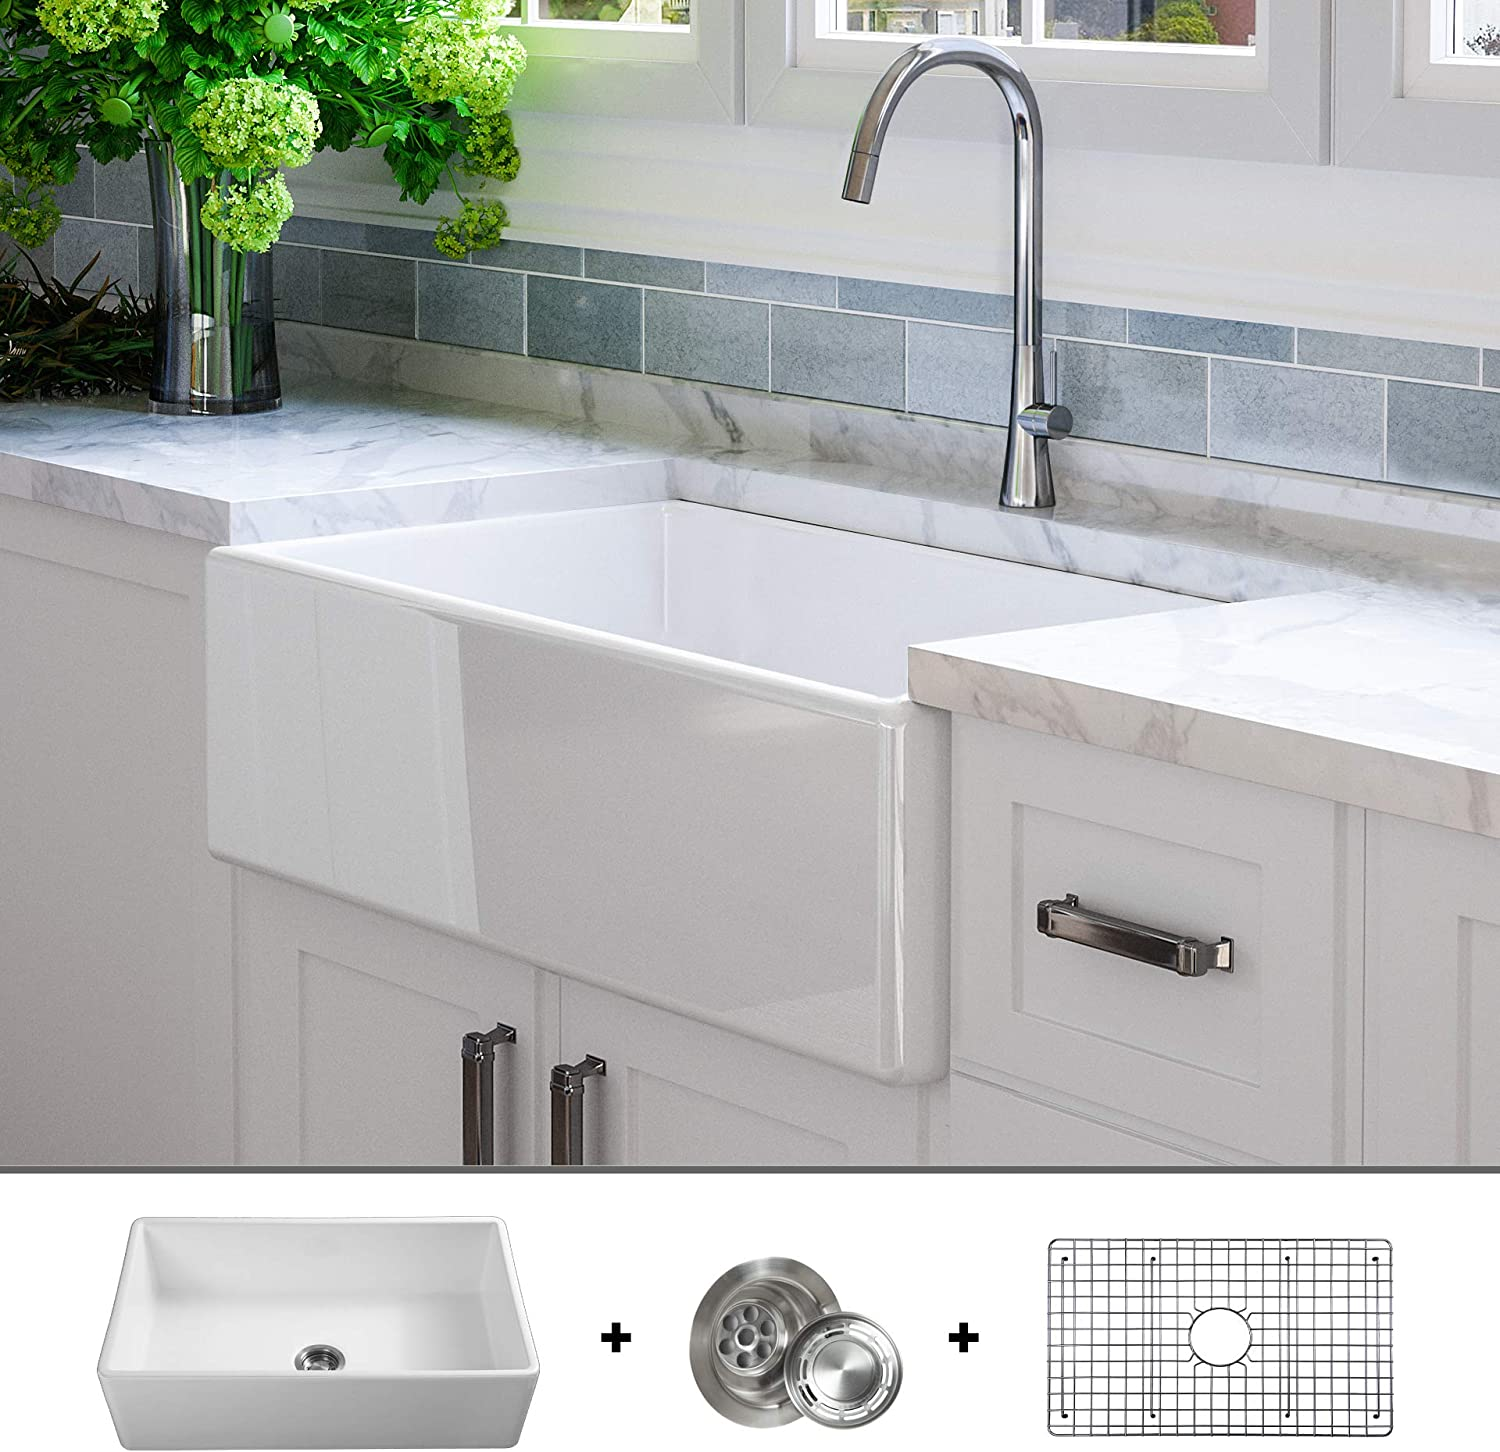 Luxury 33 inch Solid NOT HOLLOW , Ultra-Fine Fireclay Modern Farmhouse Kitchen Sink in White, Single Bowl, Flat Front, includes Grid and Drain, FSW1002 by Fossil Blu